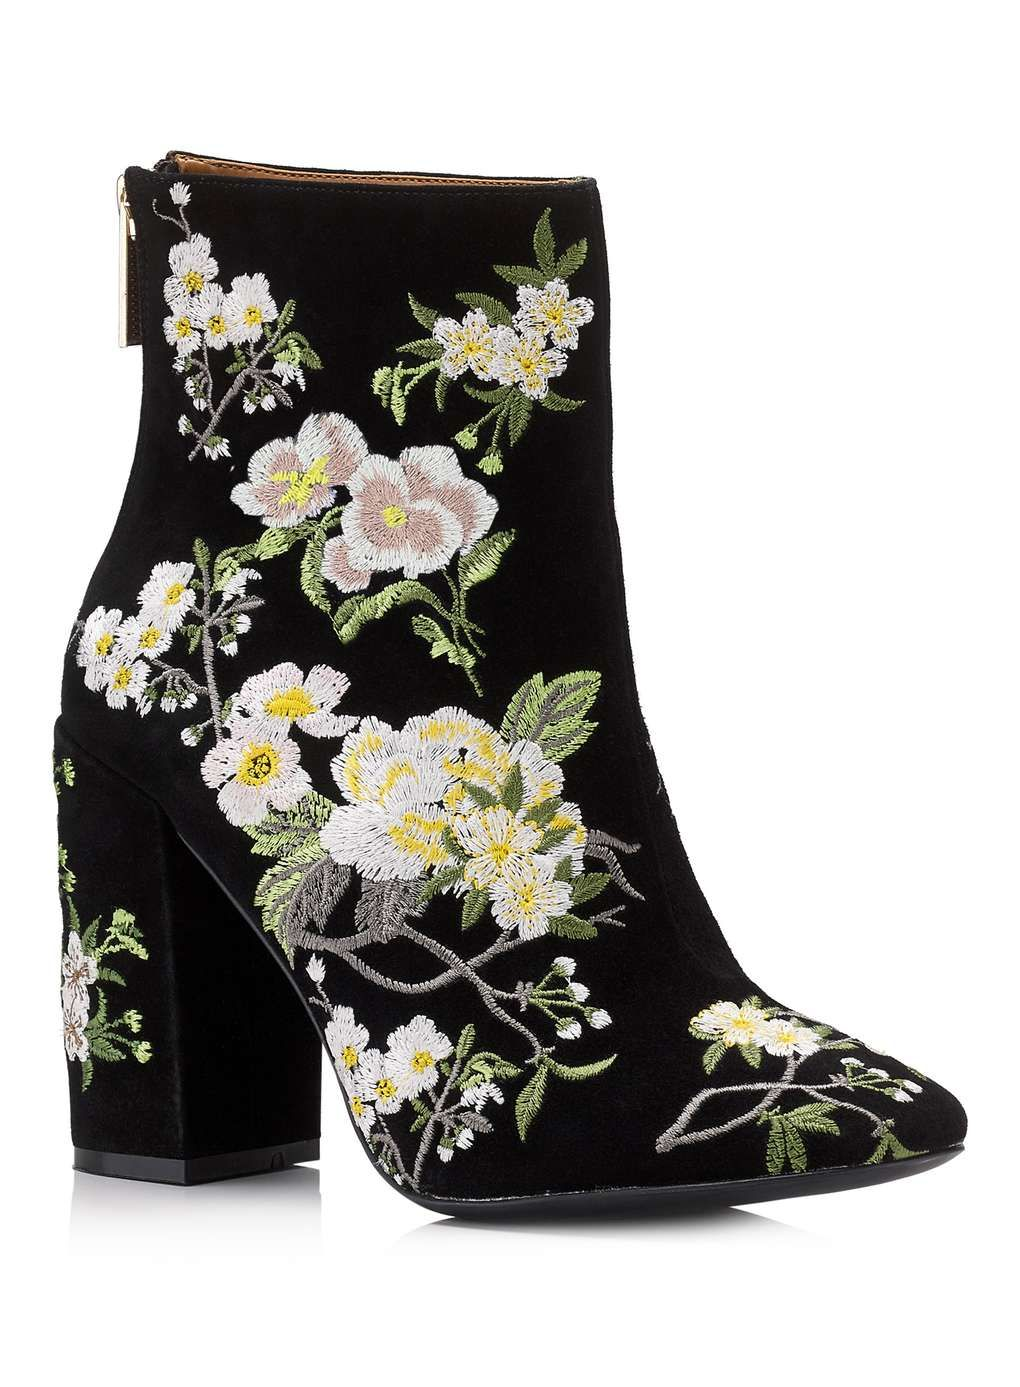 ATHENA Floral Embroidered Boot